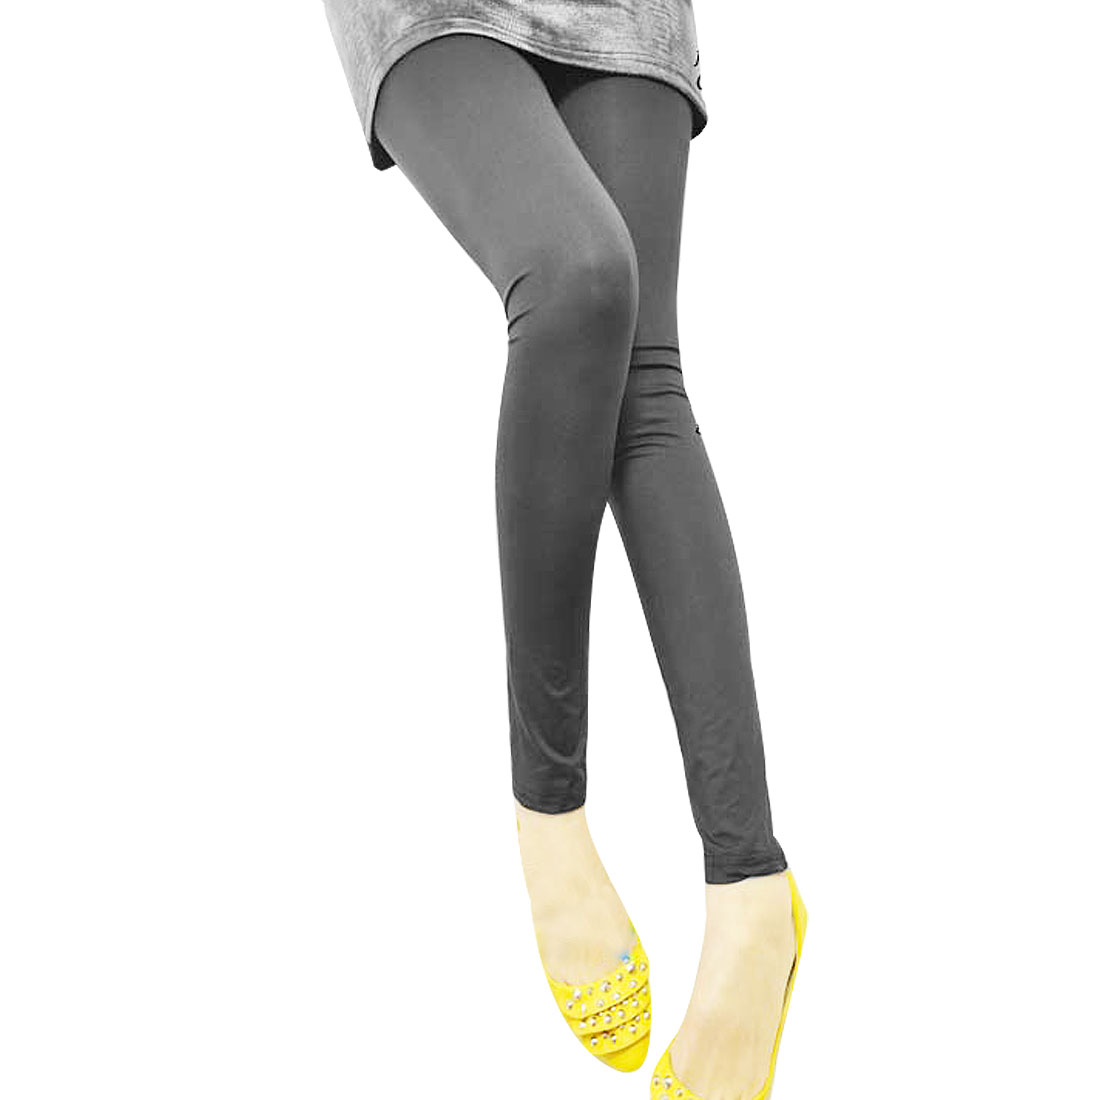 Women Dark Gray Elastic Waist Close-fitting Leggings Pants XS